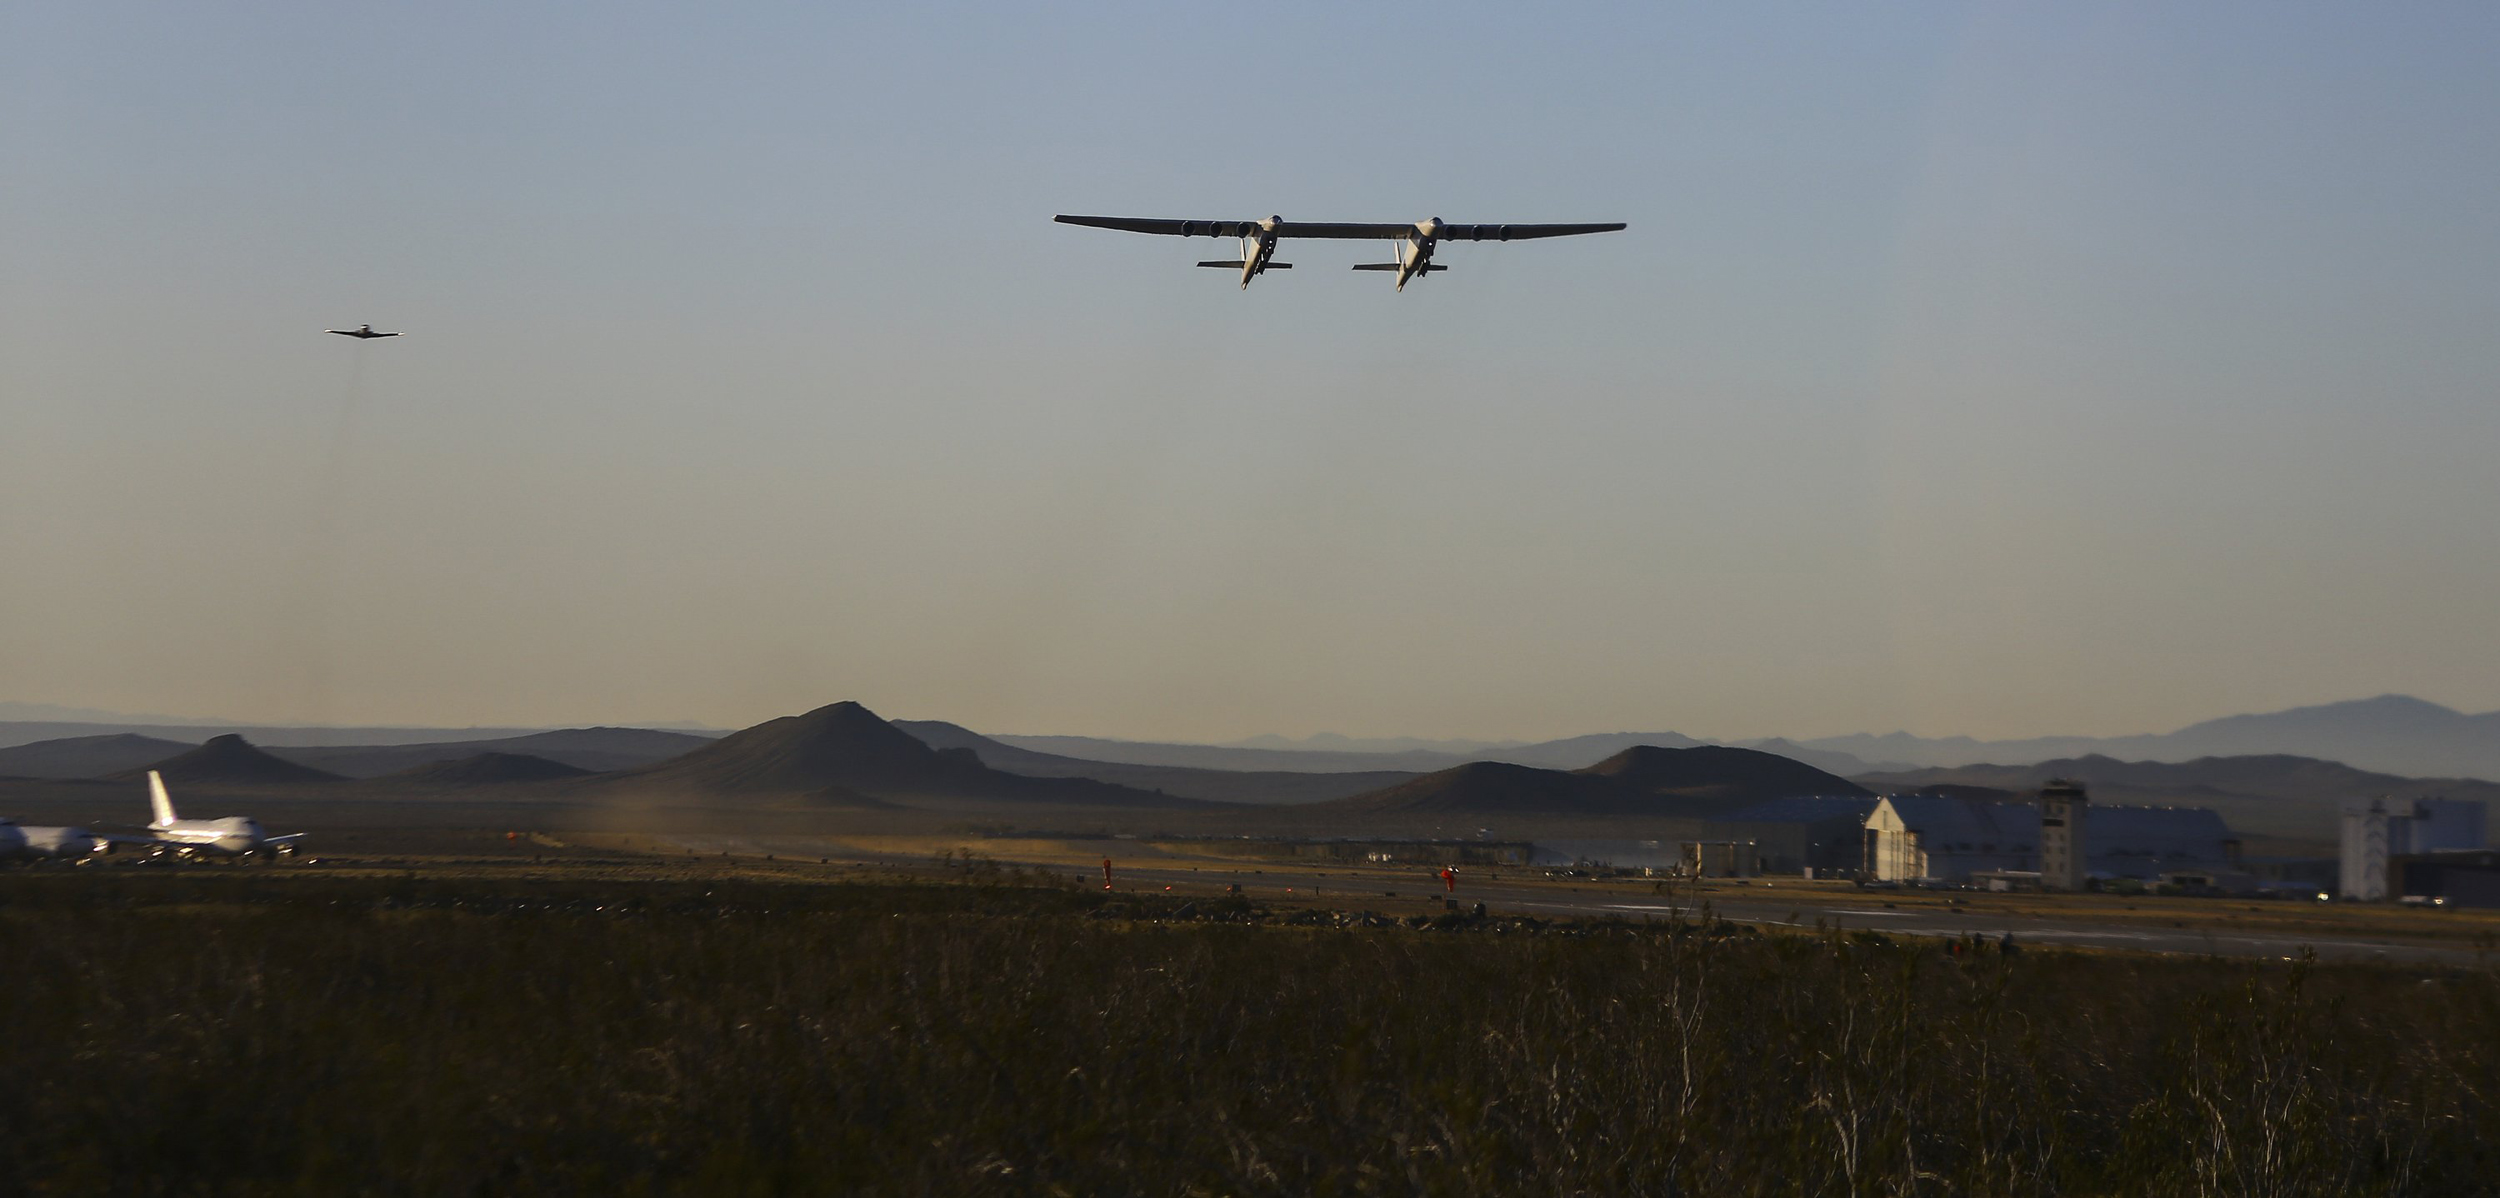 Stratolaunch,-the-world's-largest-airplane,-takes-first-flight